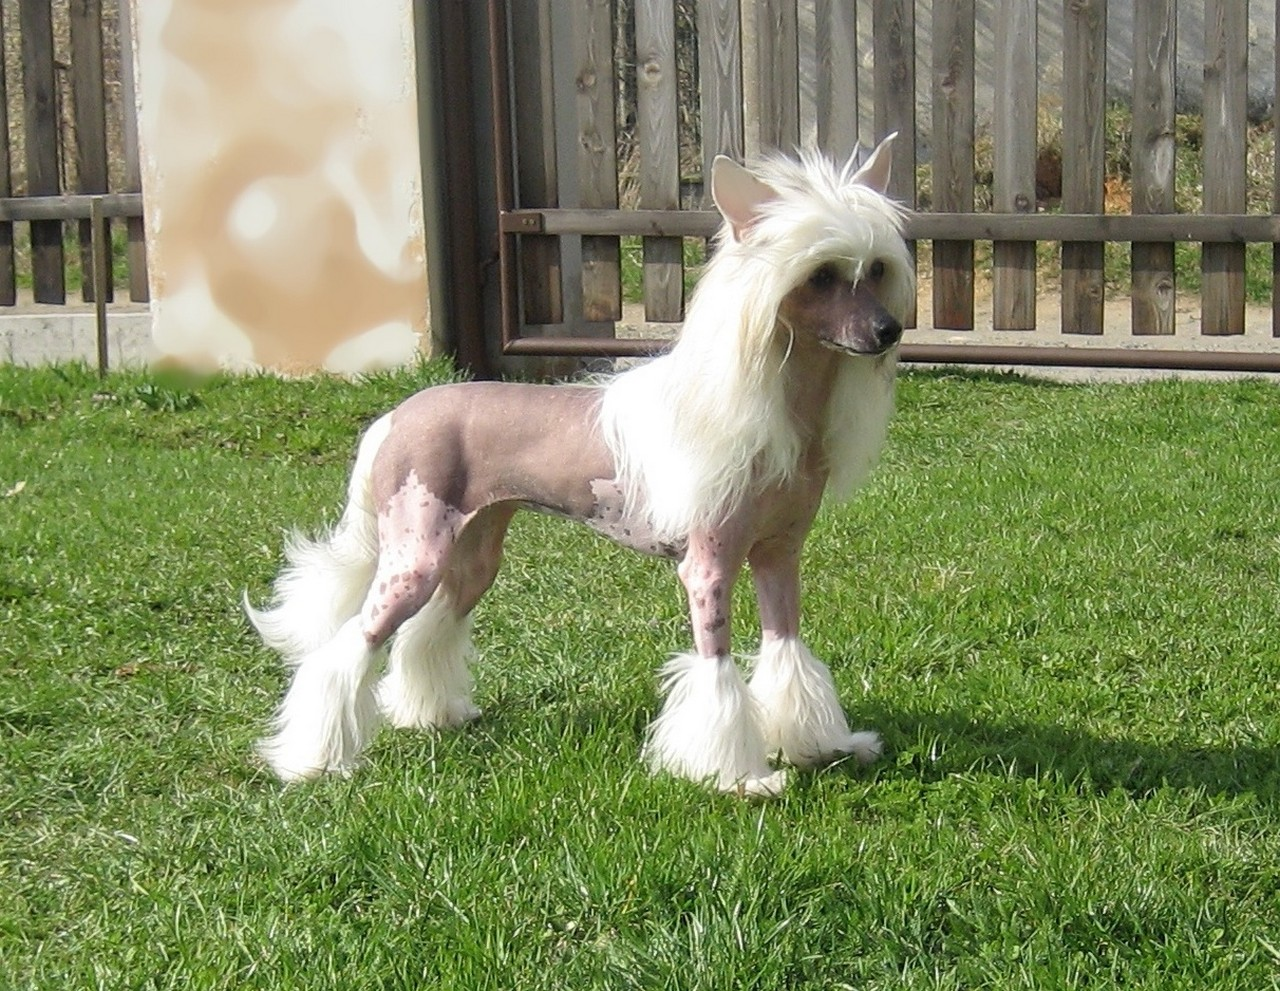 Chinese Crested dog on the grass photo and wallpaper ...